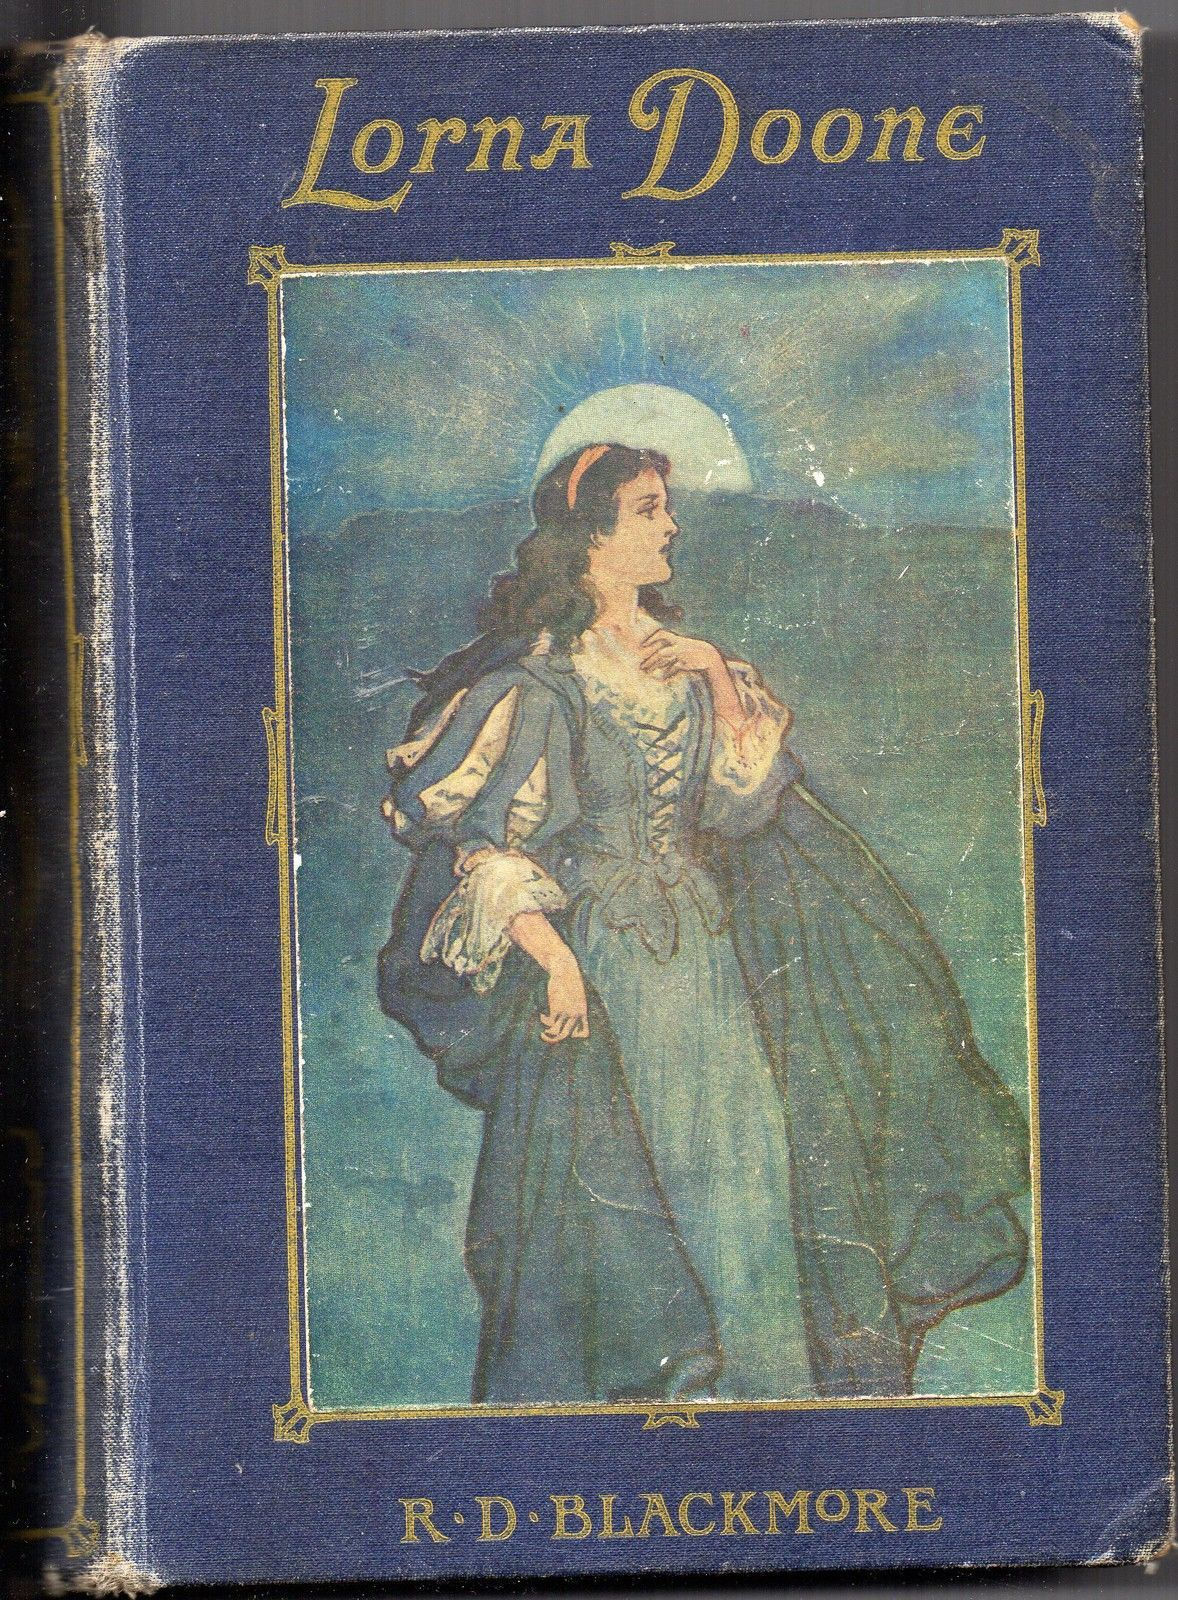 Primary image for LORNA DOONE by R D Blackmore. Collectable from around 1900